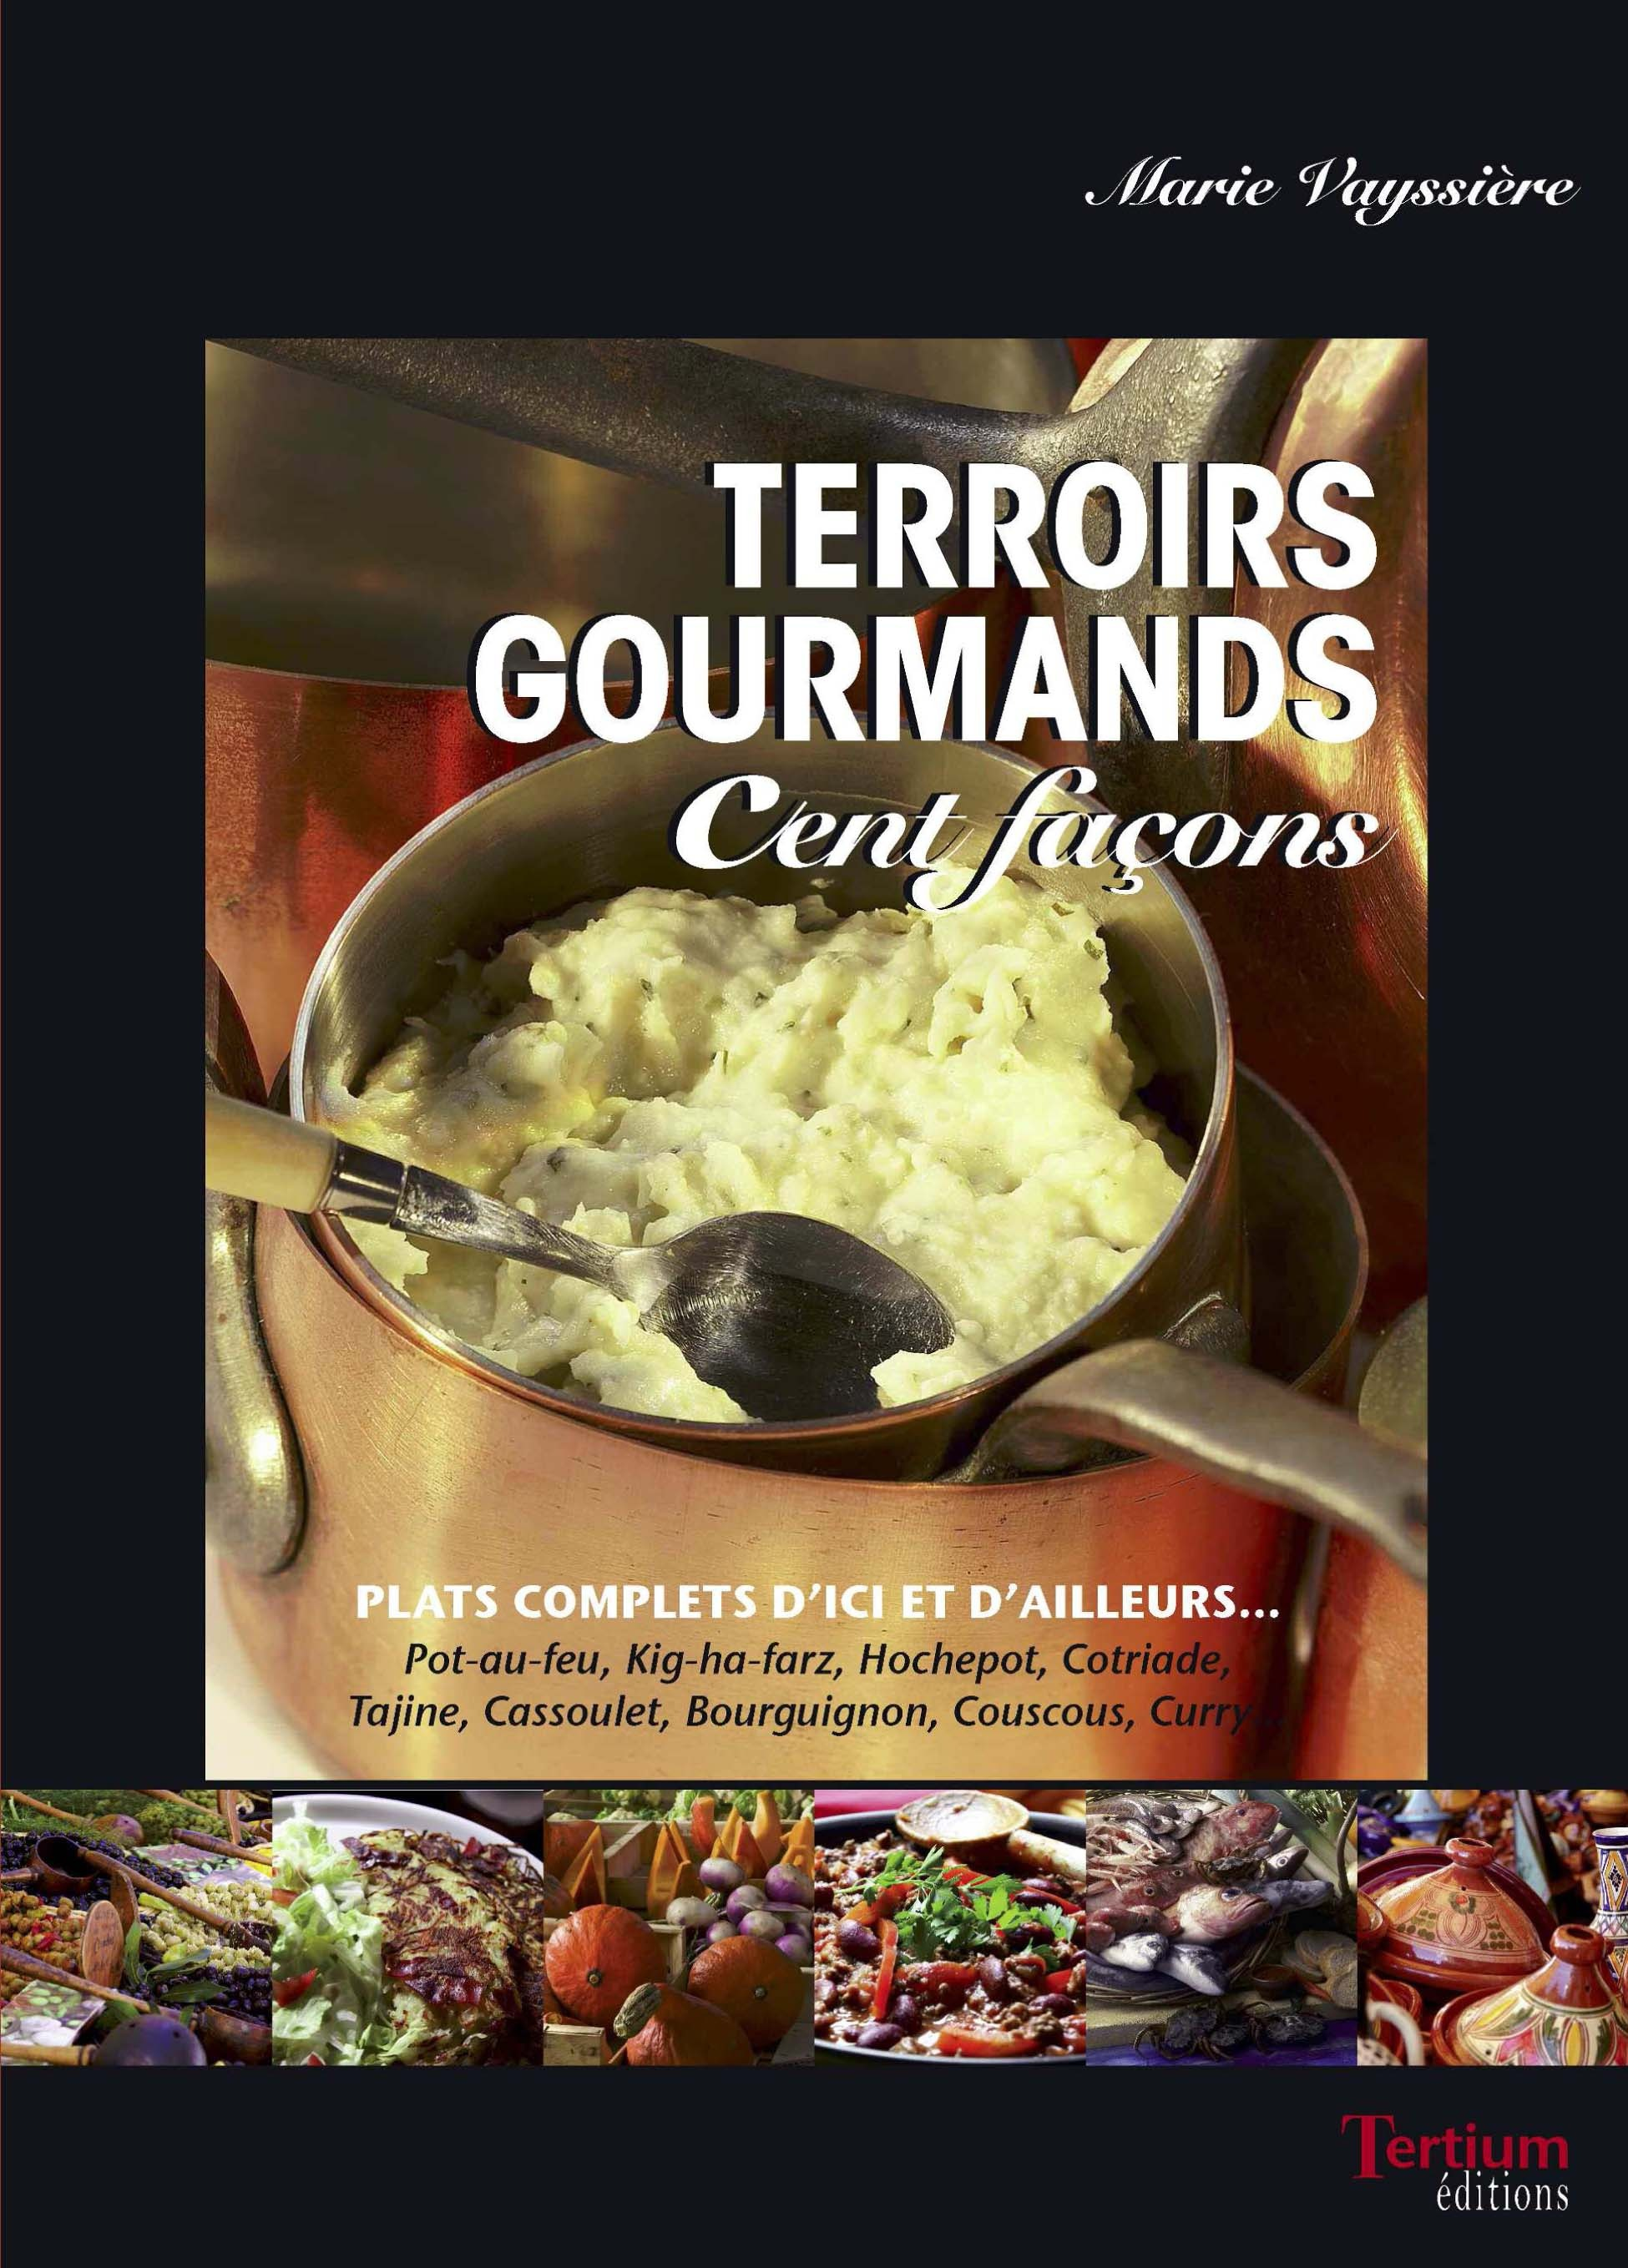 Terroirs gourmands cent façons  - Marie Vayssiere